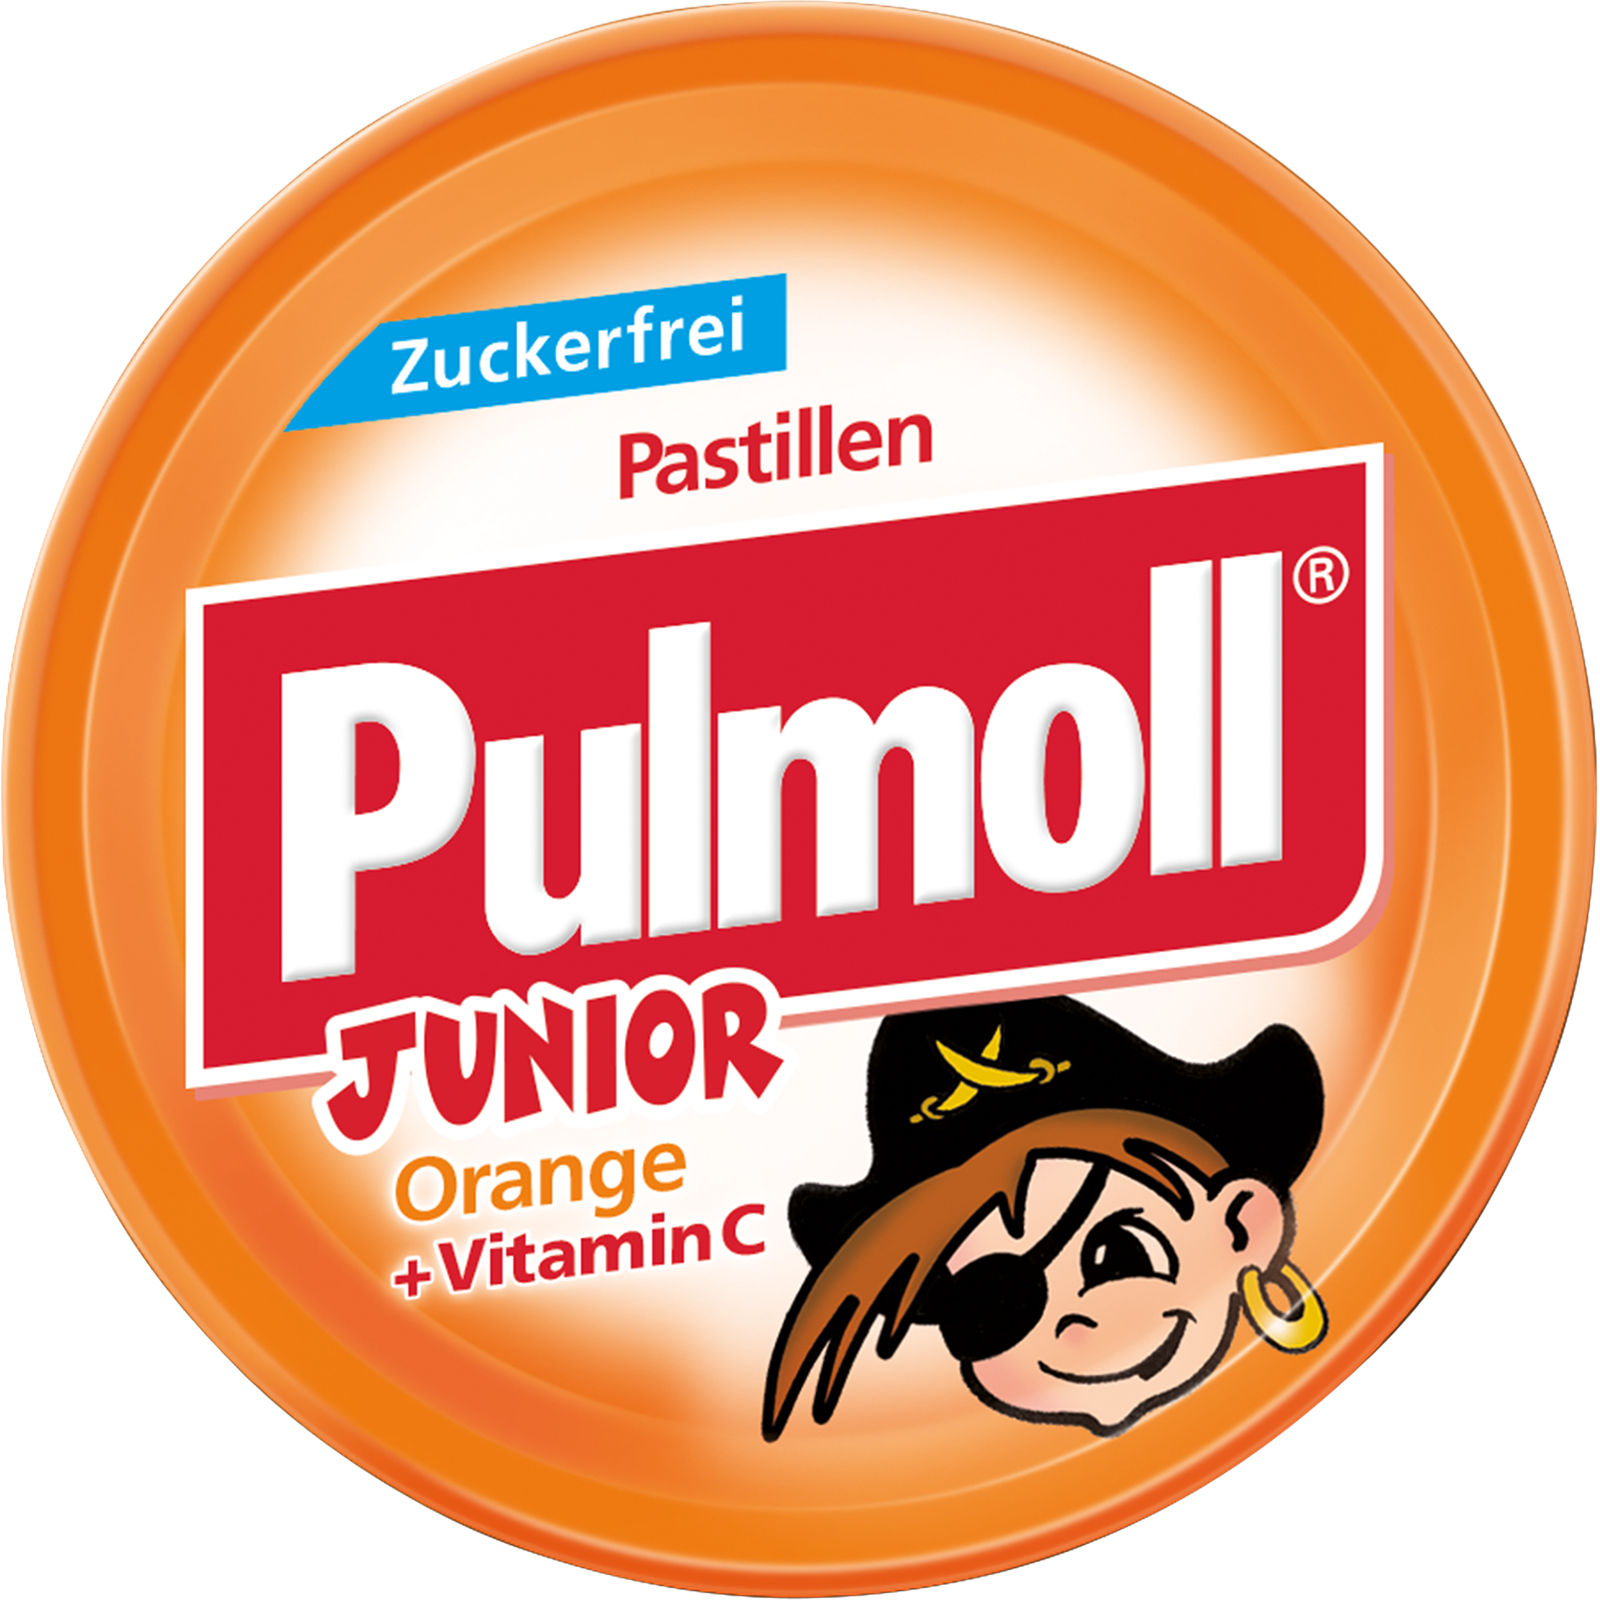 Pulmoll Hustenbonbon Junior Orange